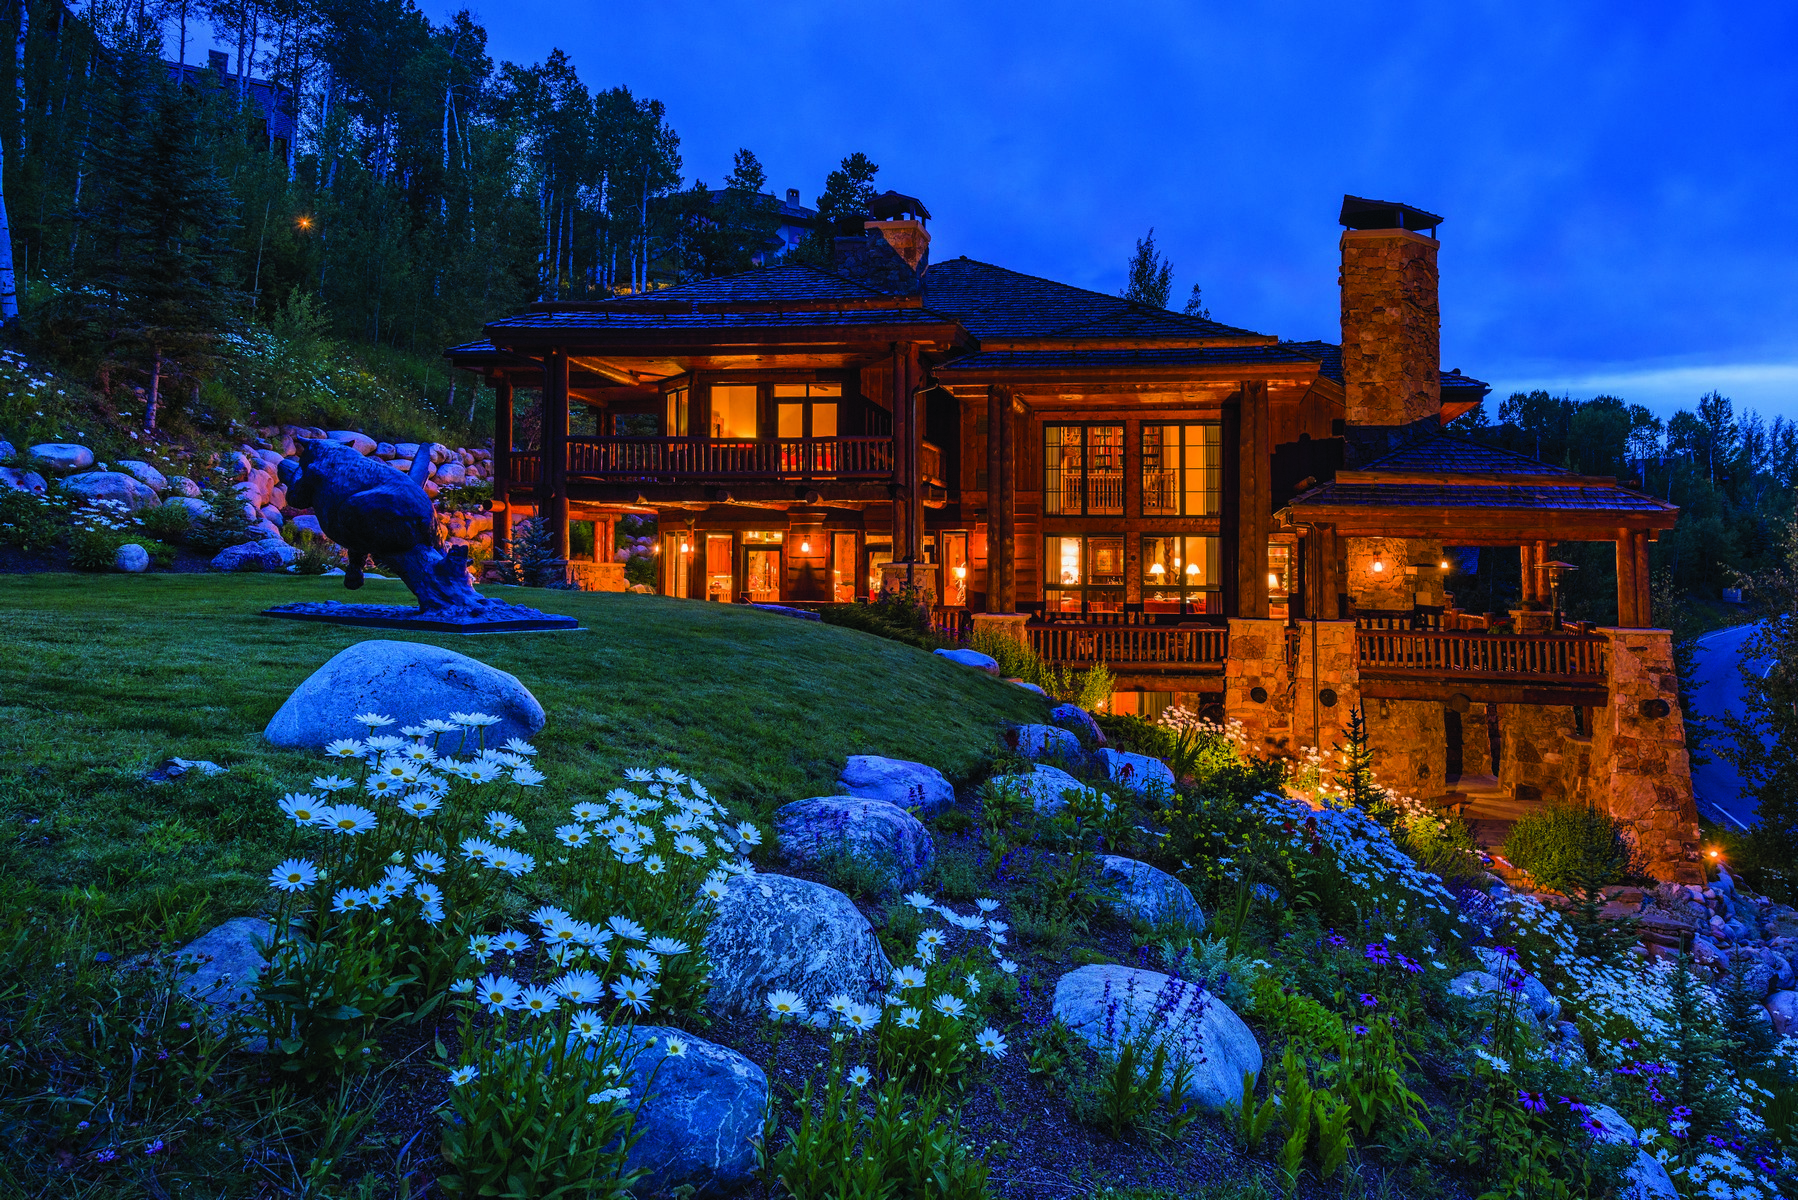 Casa Unifamiliar por un Venta en Beaver Creek's Most Stunning Log Home 201 Borders Rd Avon, Colorado 81620 Estados Unidos